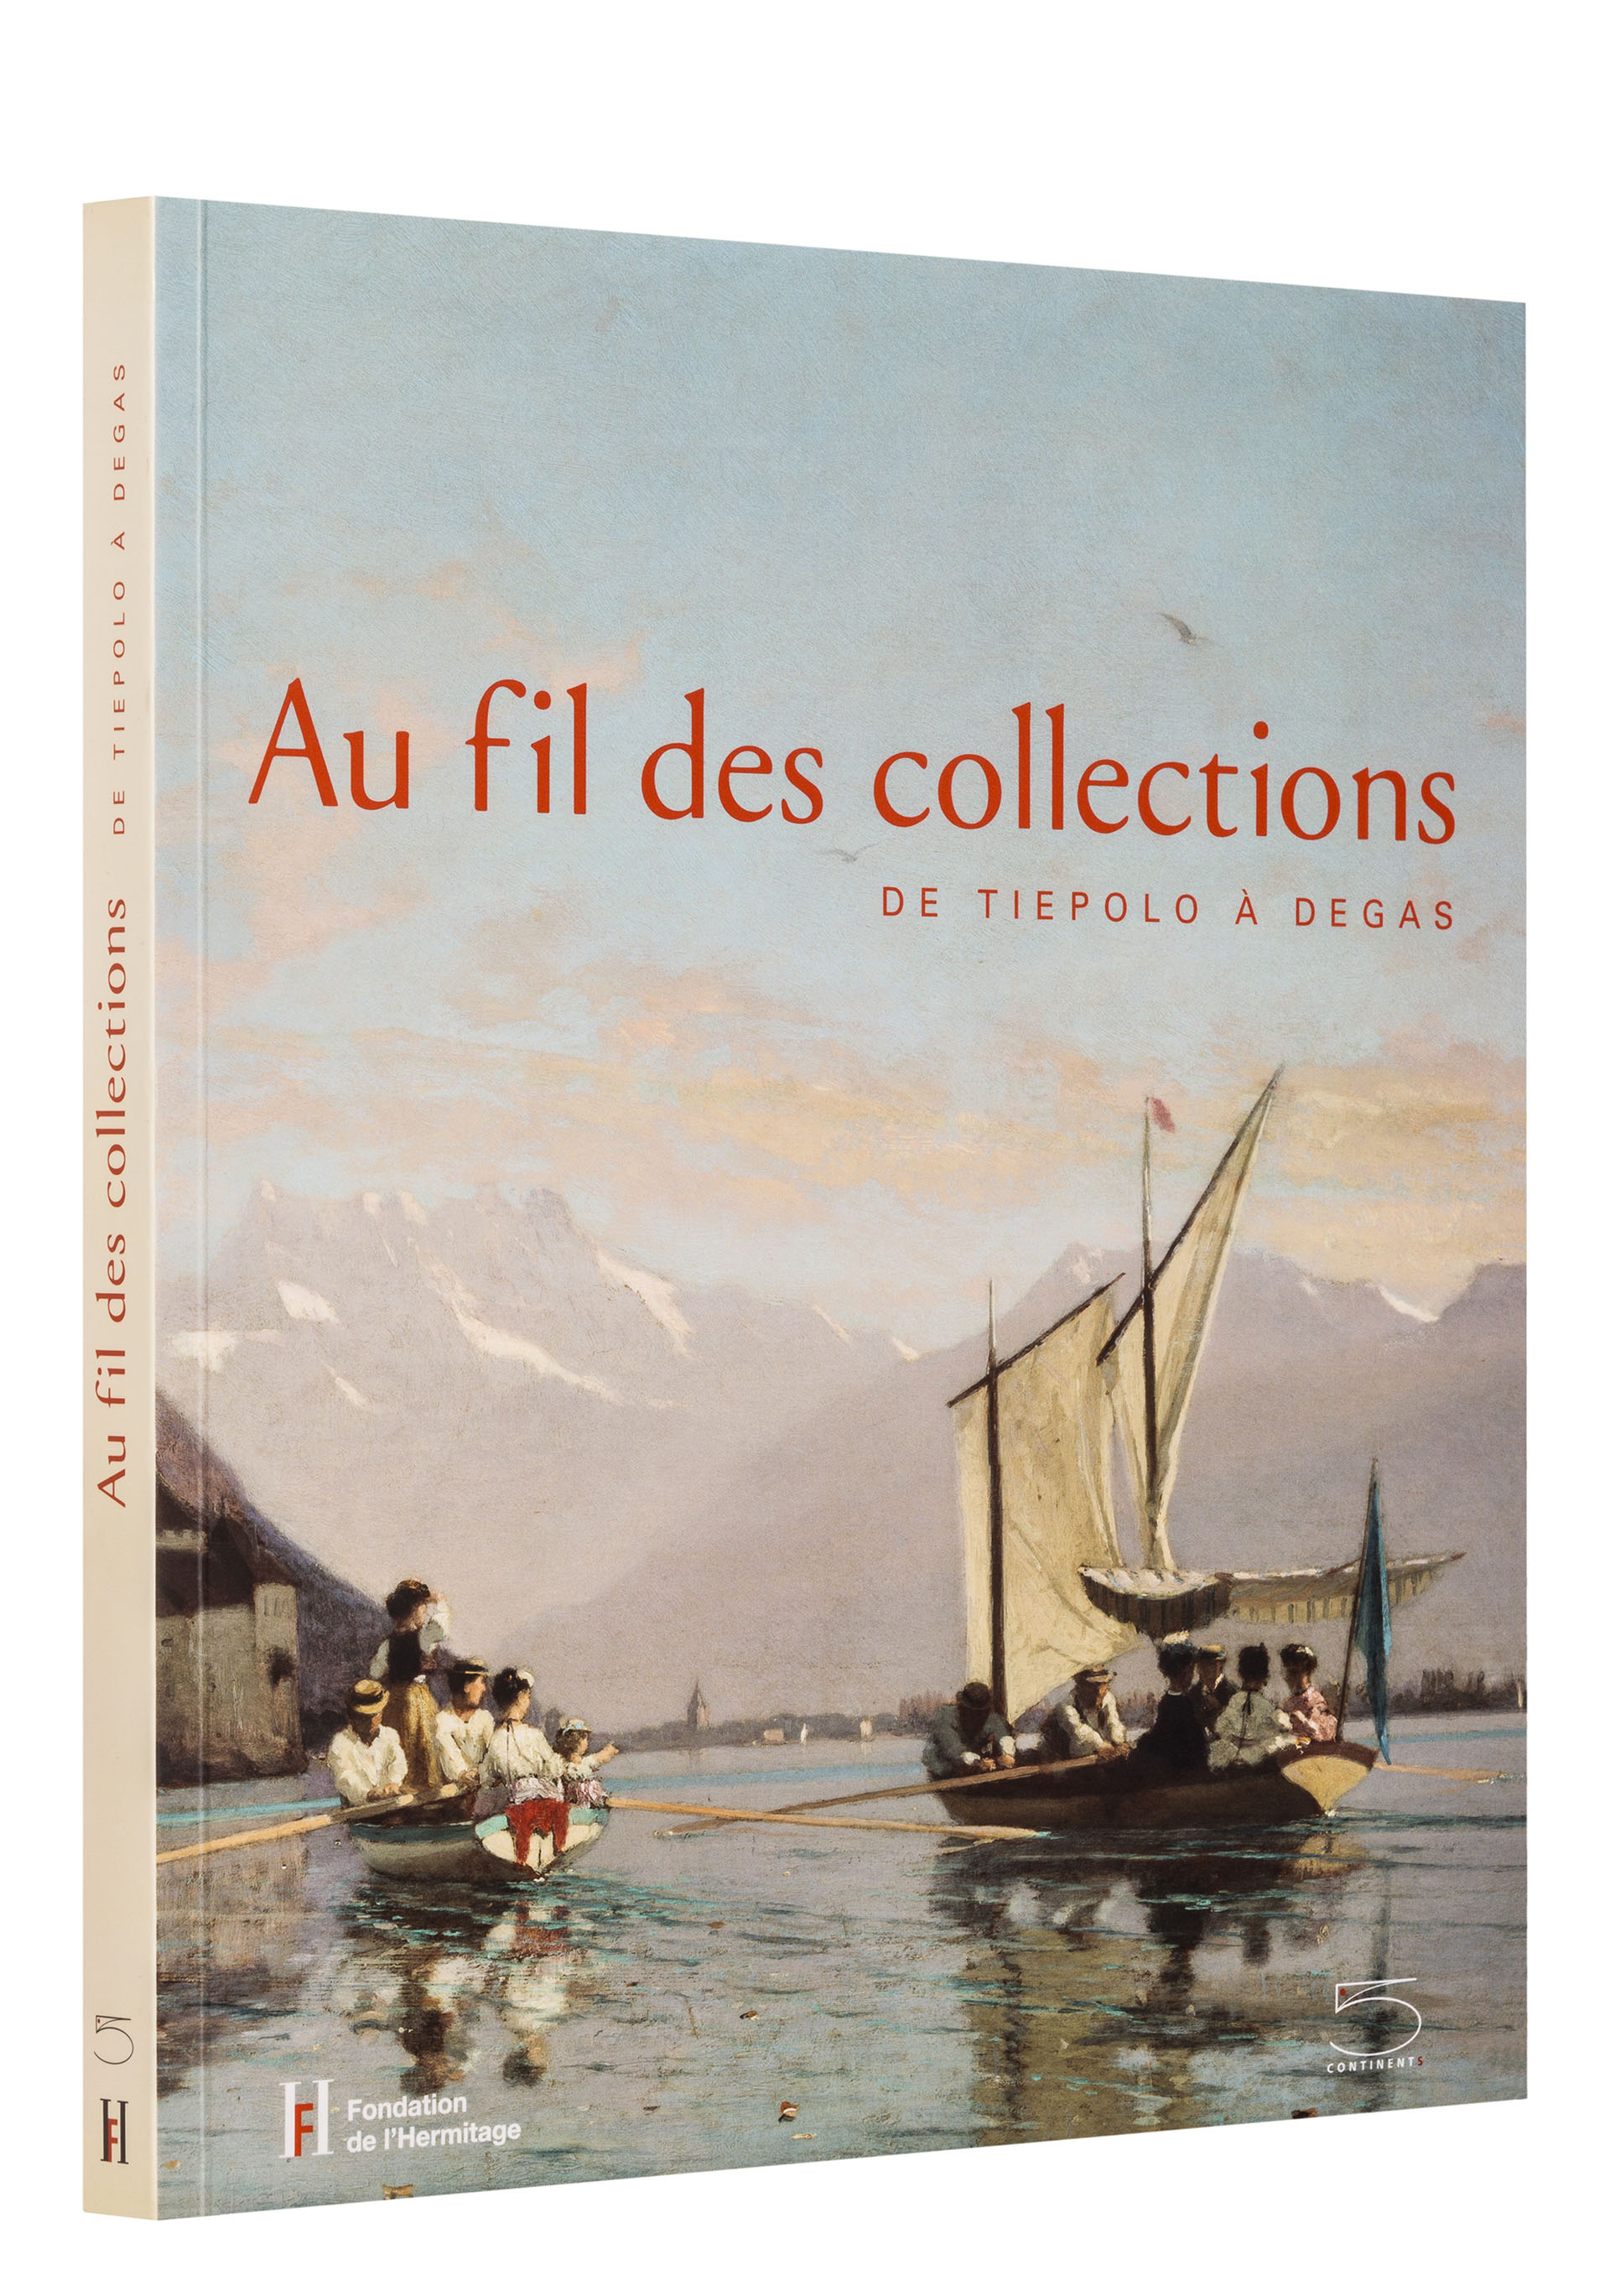 Au fil des collections